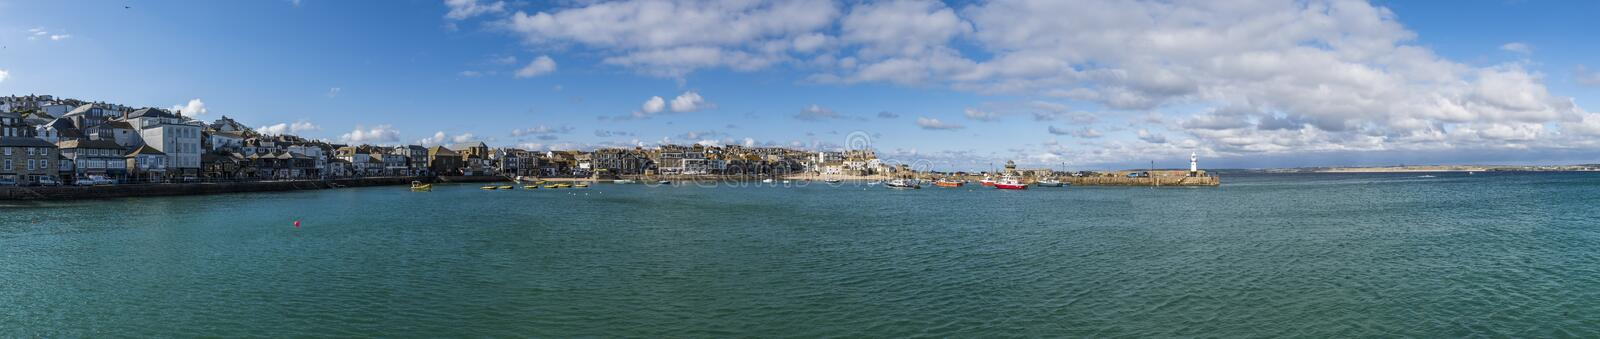 Panorama in Heilige Ives Cornwall stock foto's